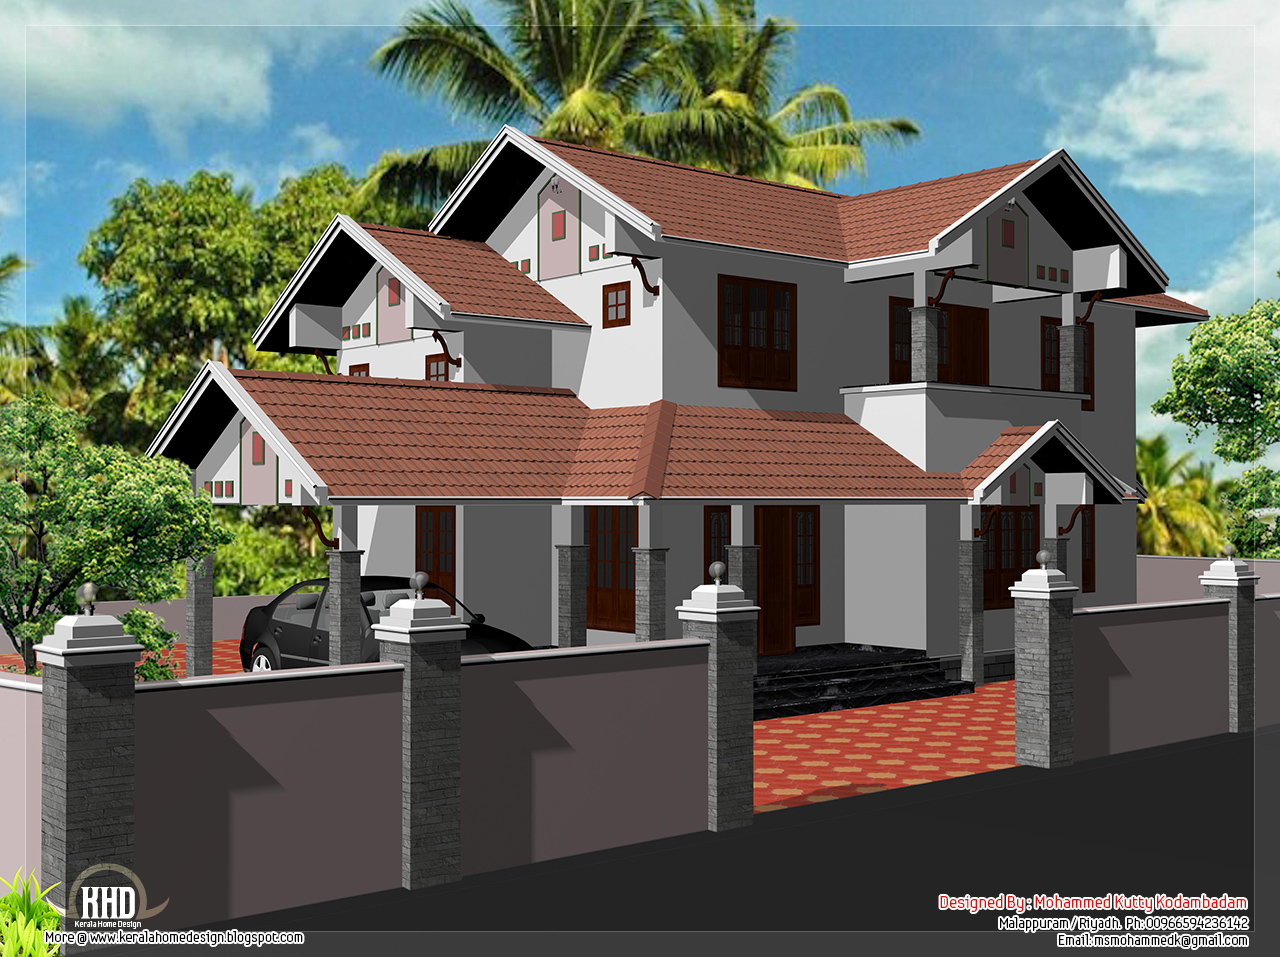 2000 house elevation design house design plans for Best home designs under 2000 square feet